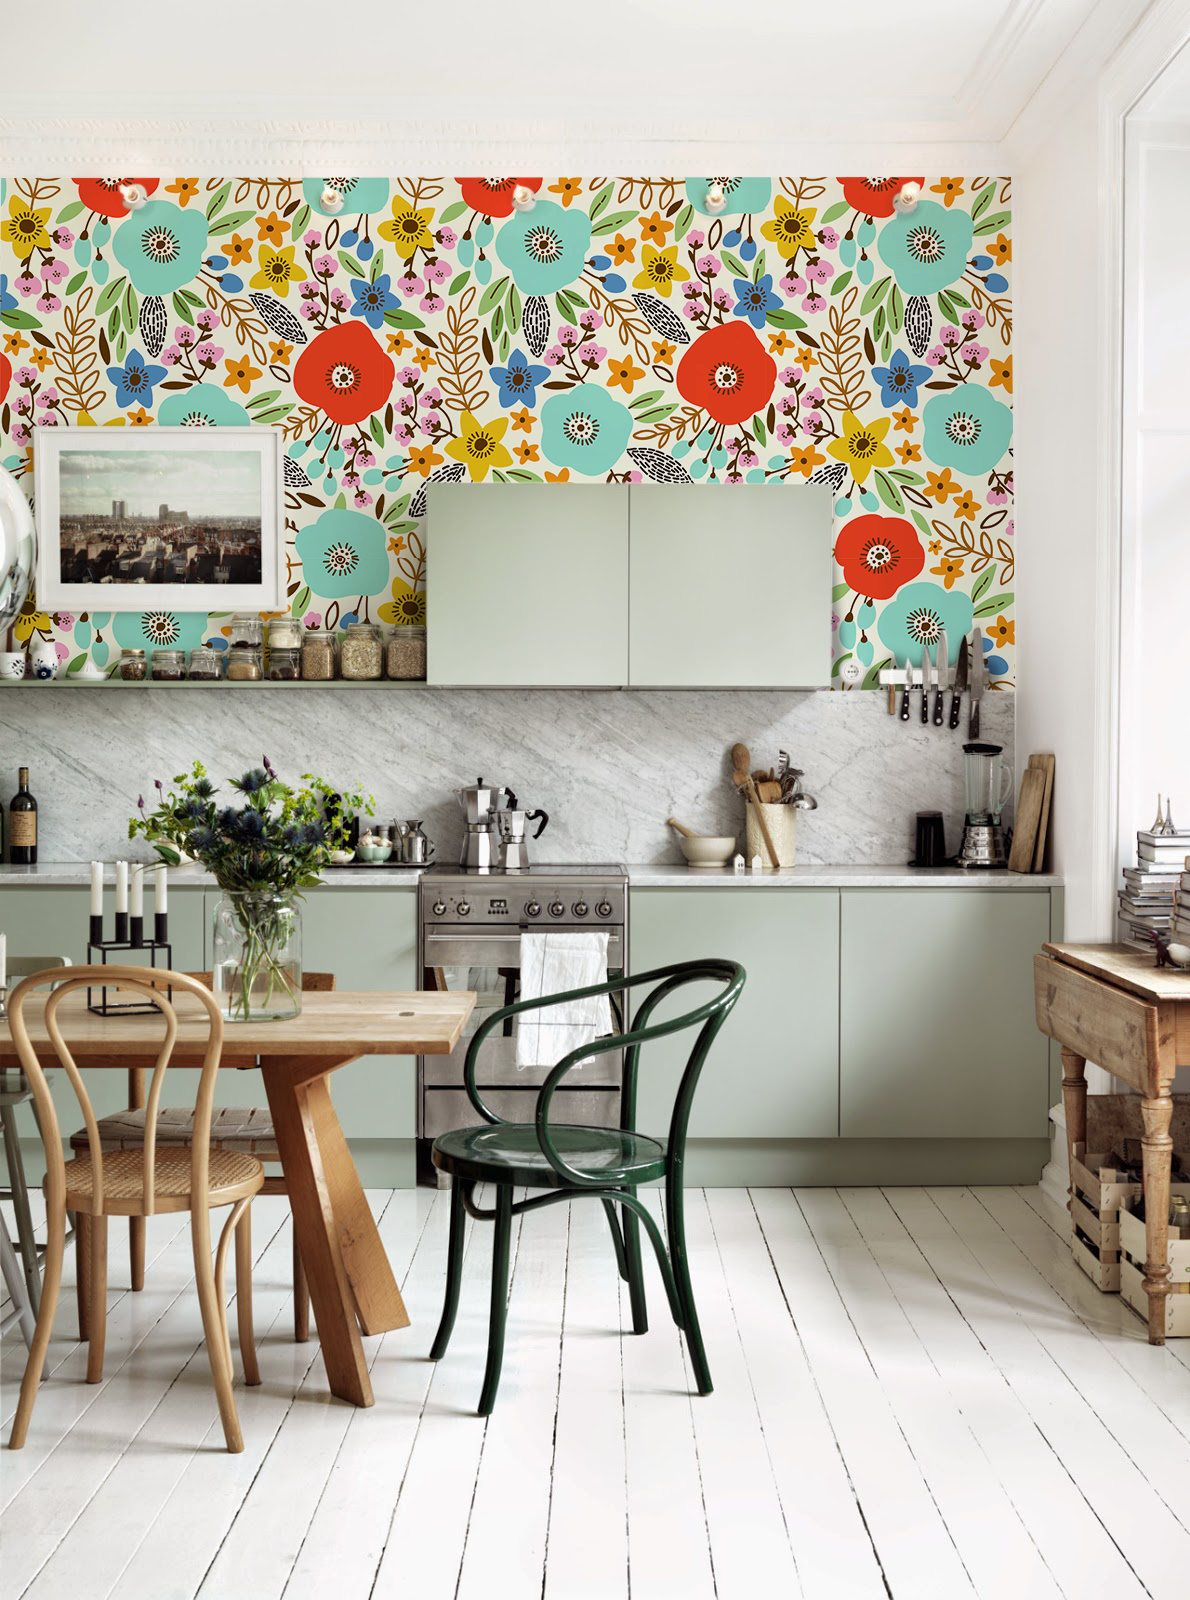 Meadow removable Wallpaper traditional white Print